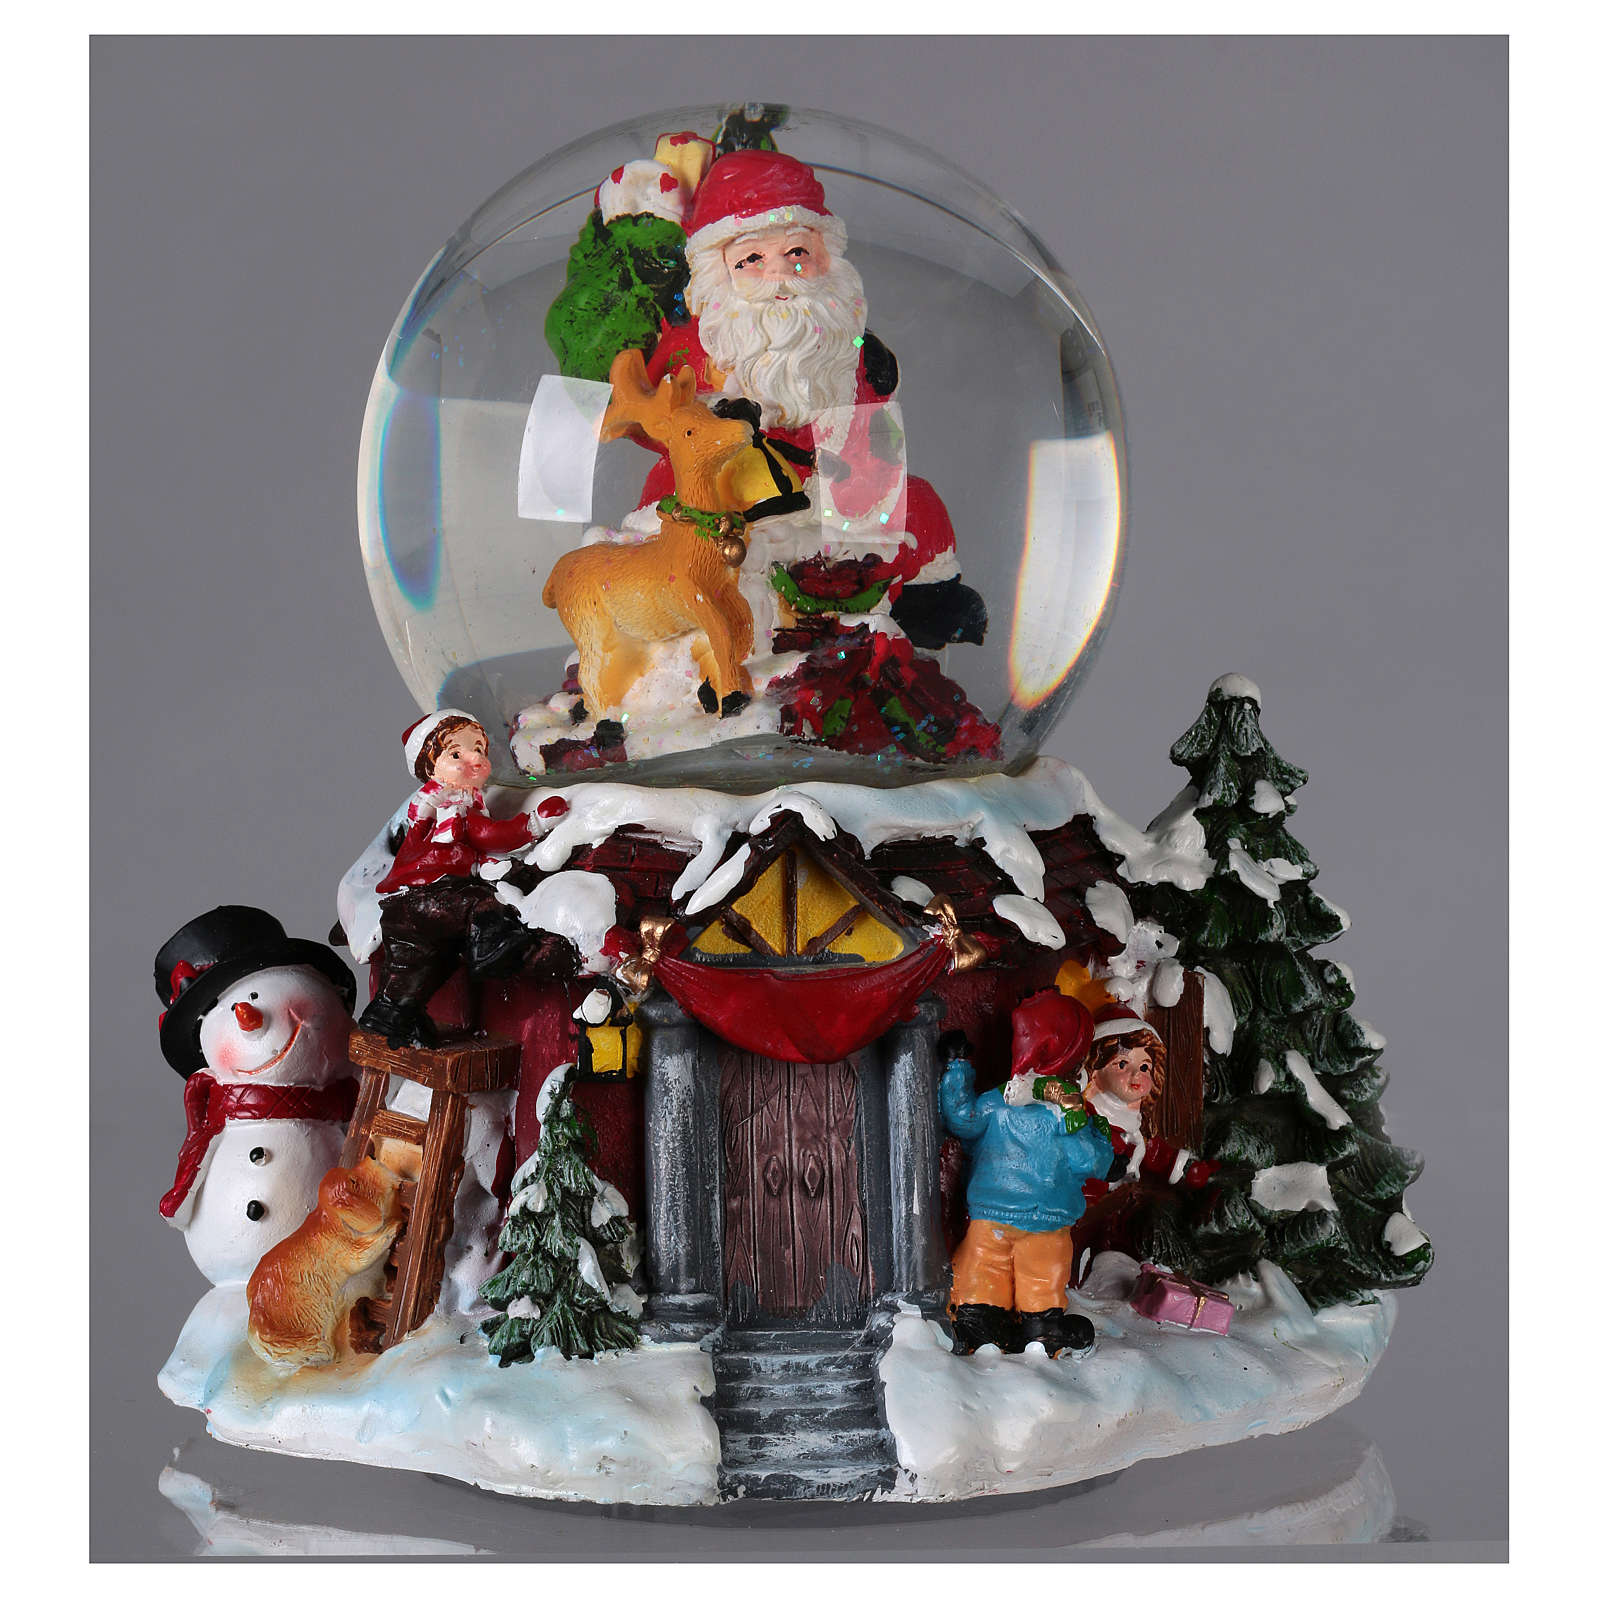 Snow globe with Santa Claus, music and lights, glittered 3